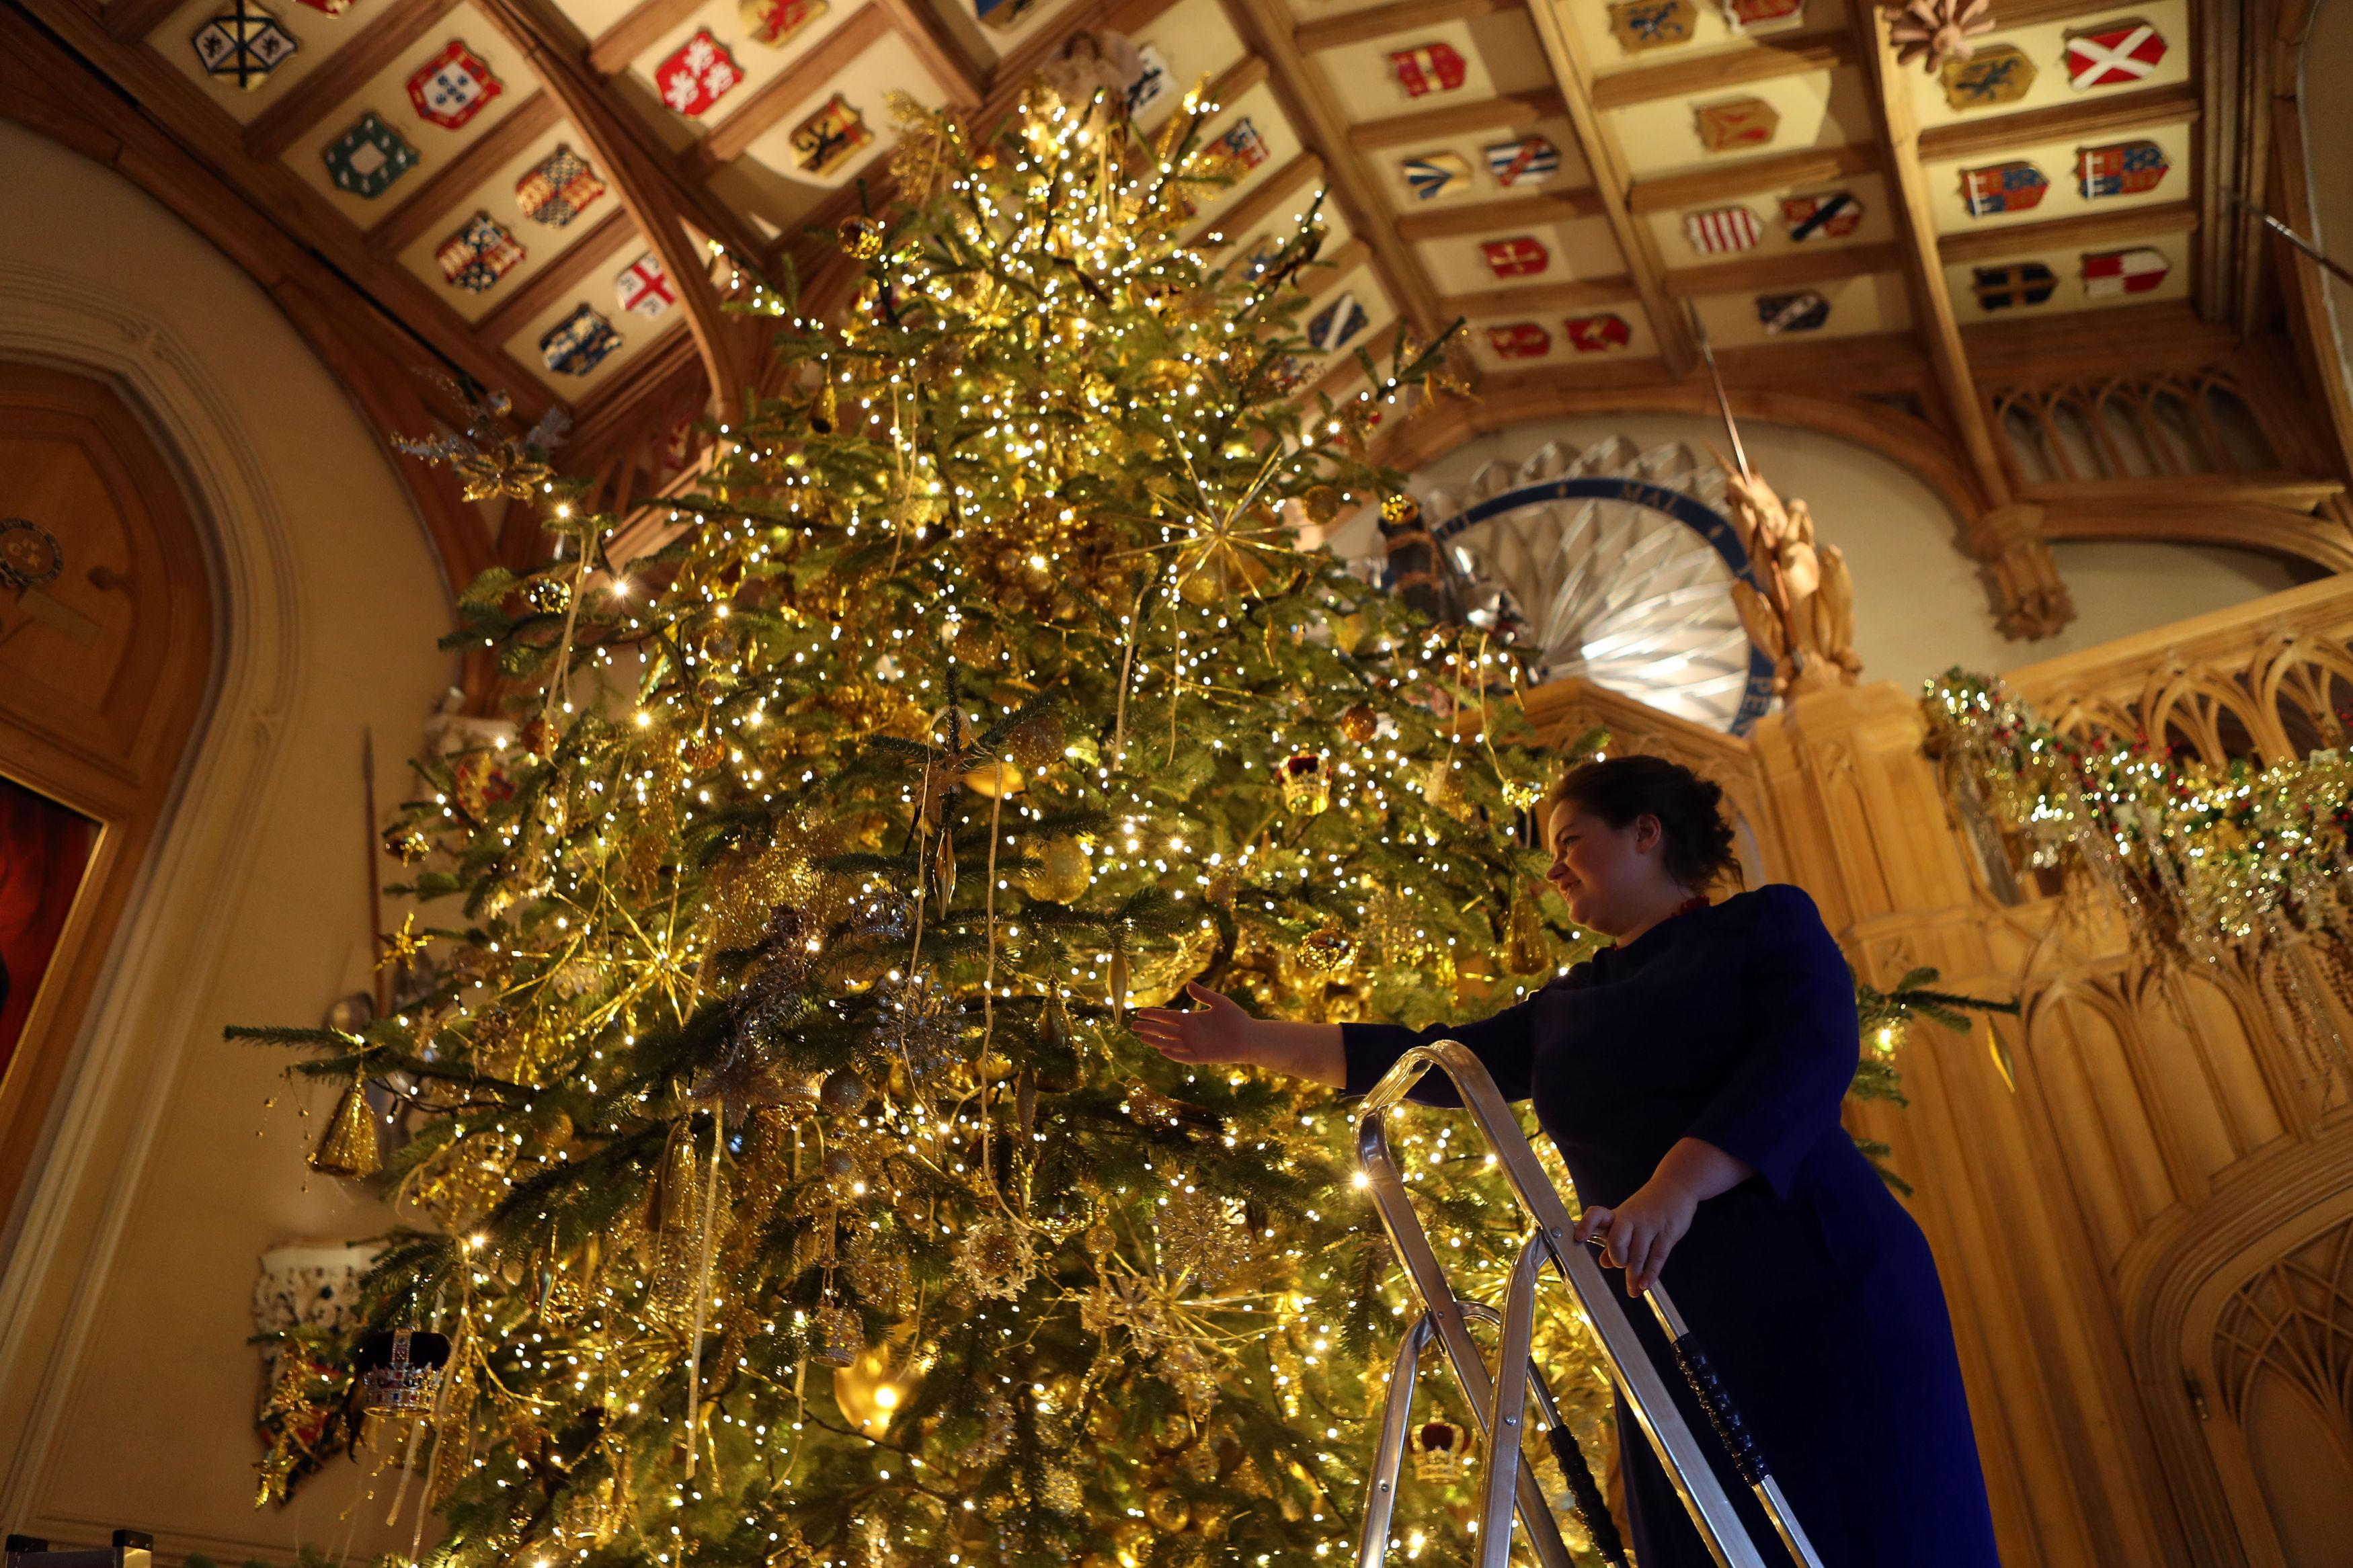 Queen Has 20 Foot Christmas Tree At Windsor Castle